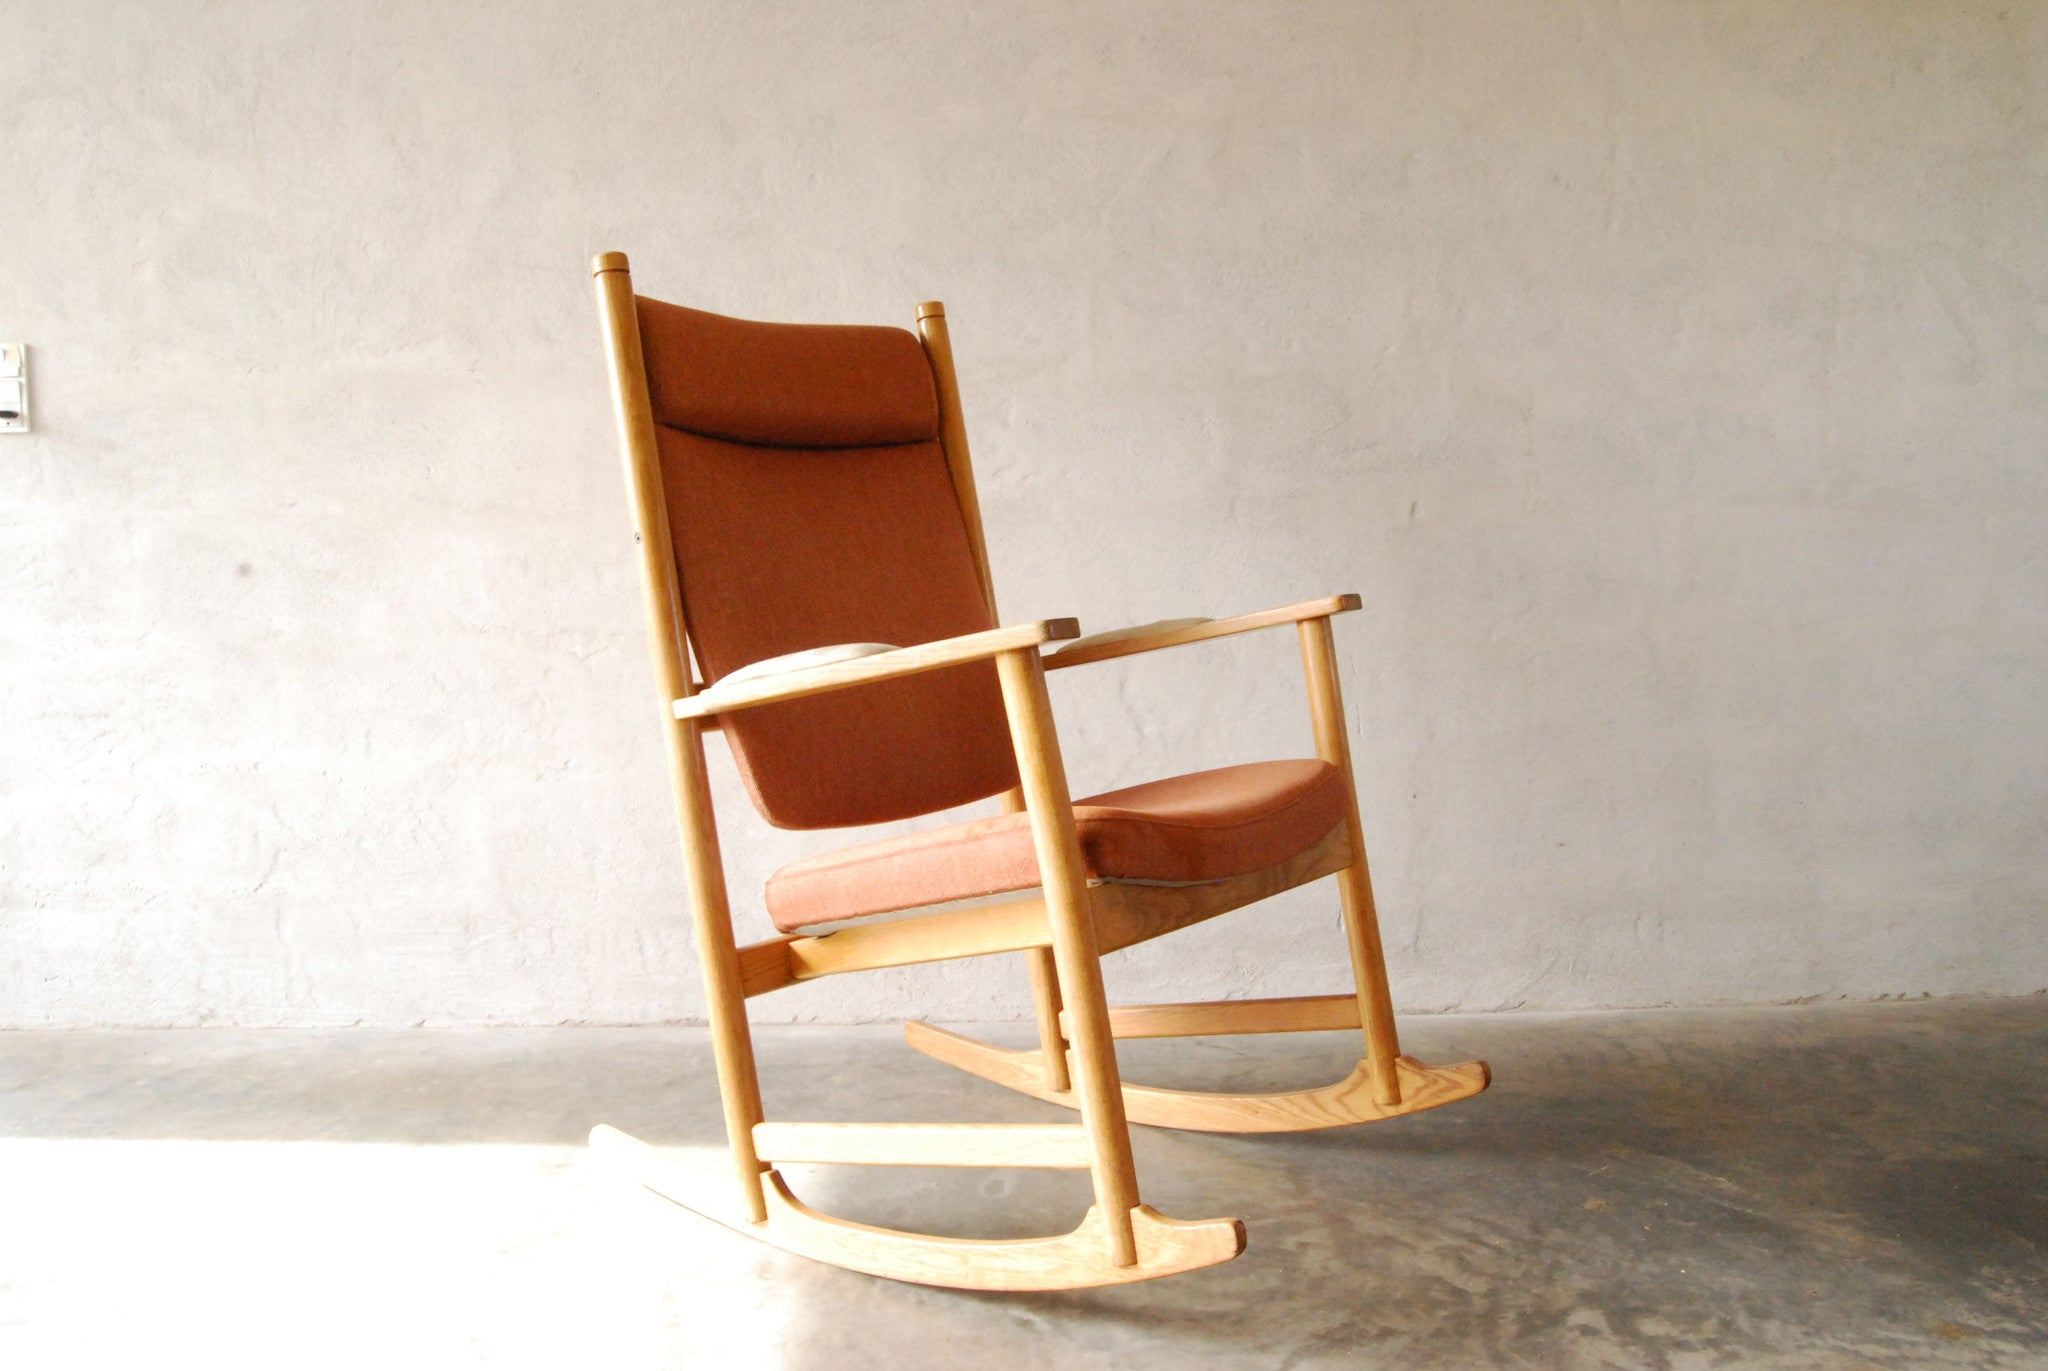 Chase & Sorensen Rocking chair by Kurt Ostervig